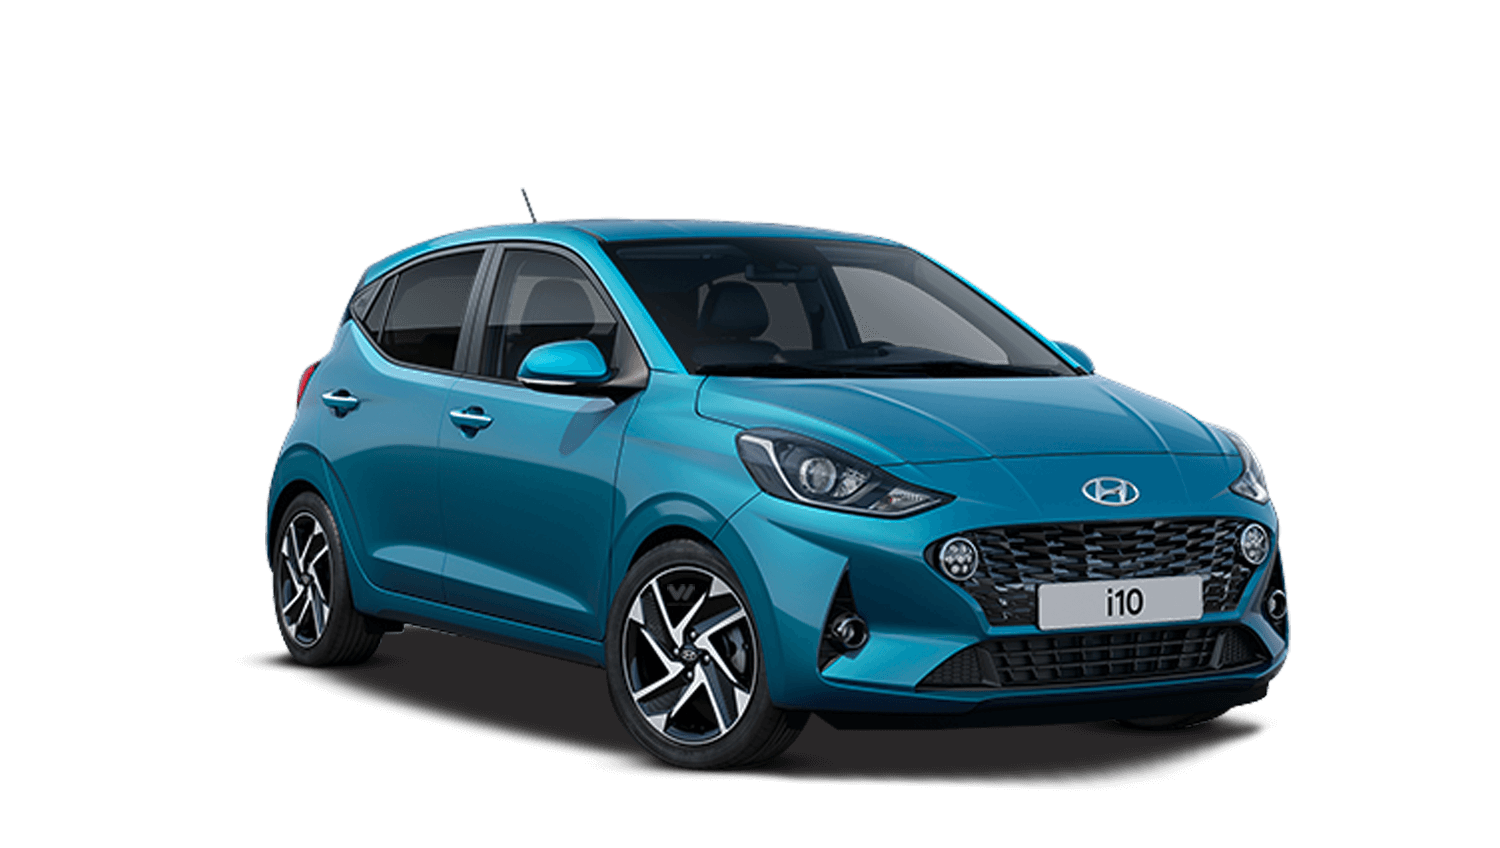 All-new i10 Leasing Offers